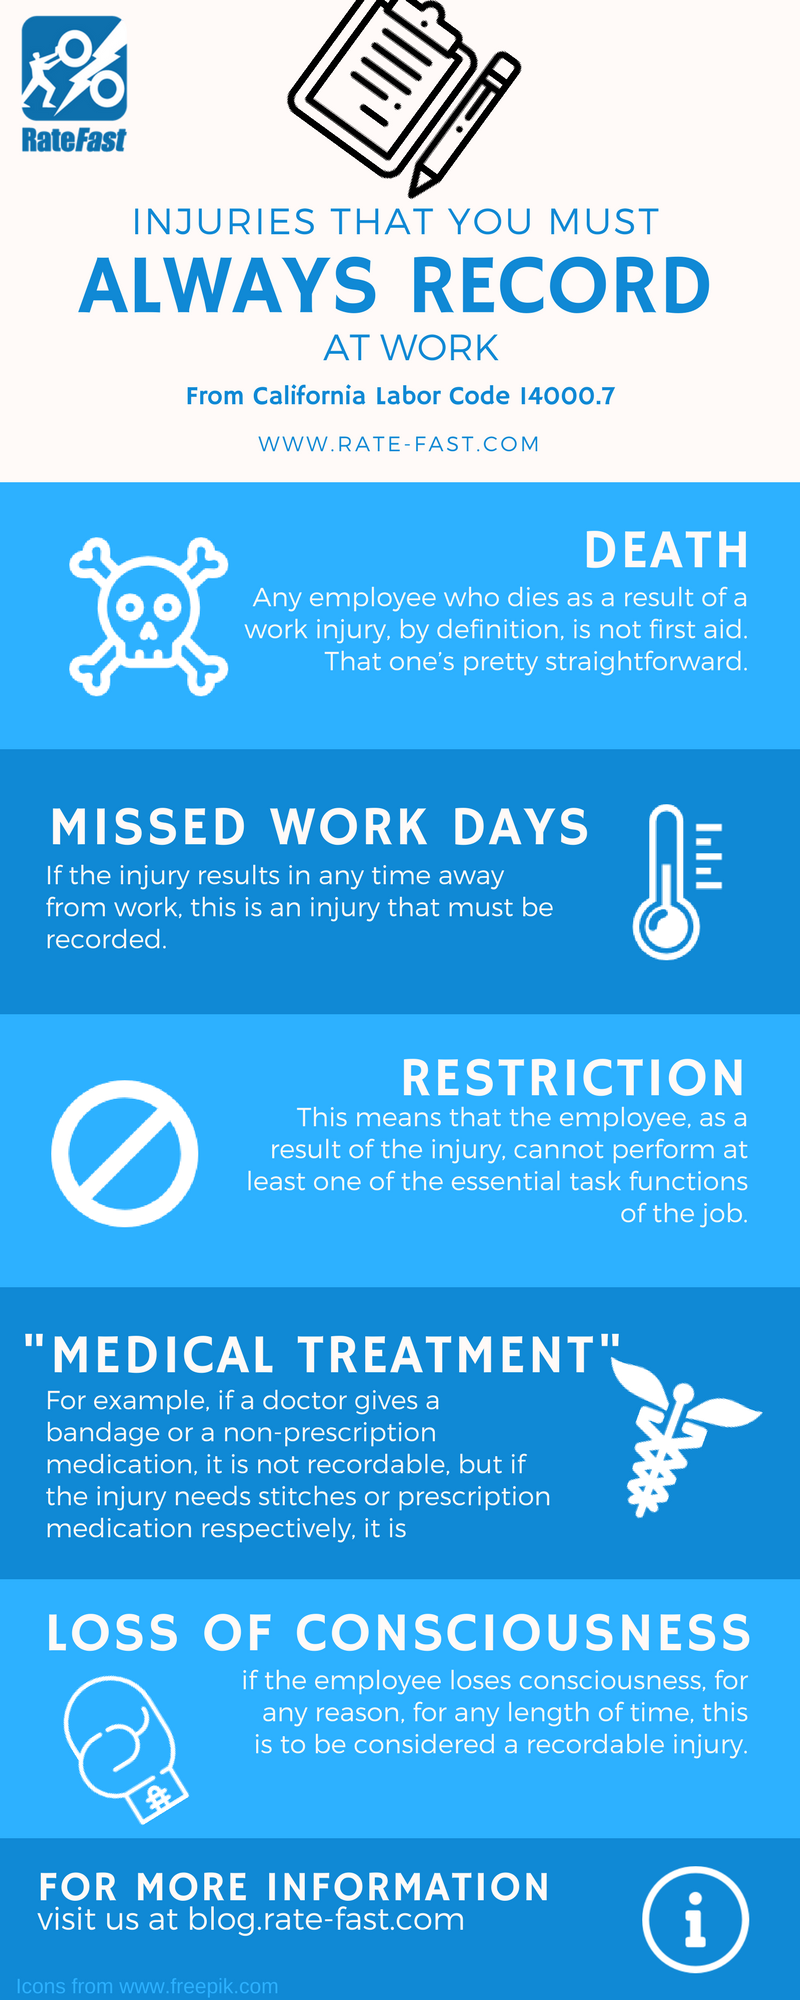 Infographic: Injuries That You Must Always Record at Work